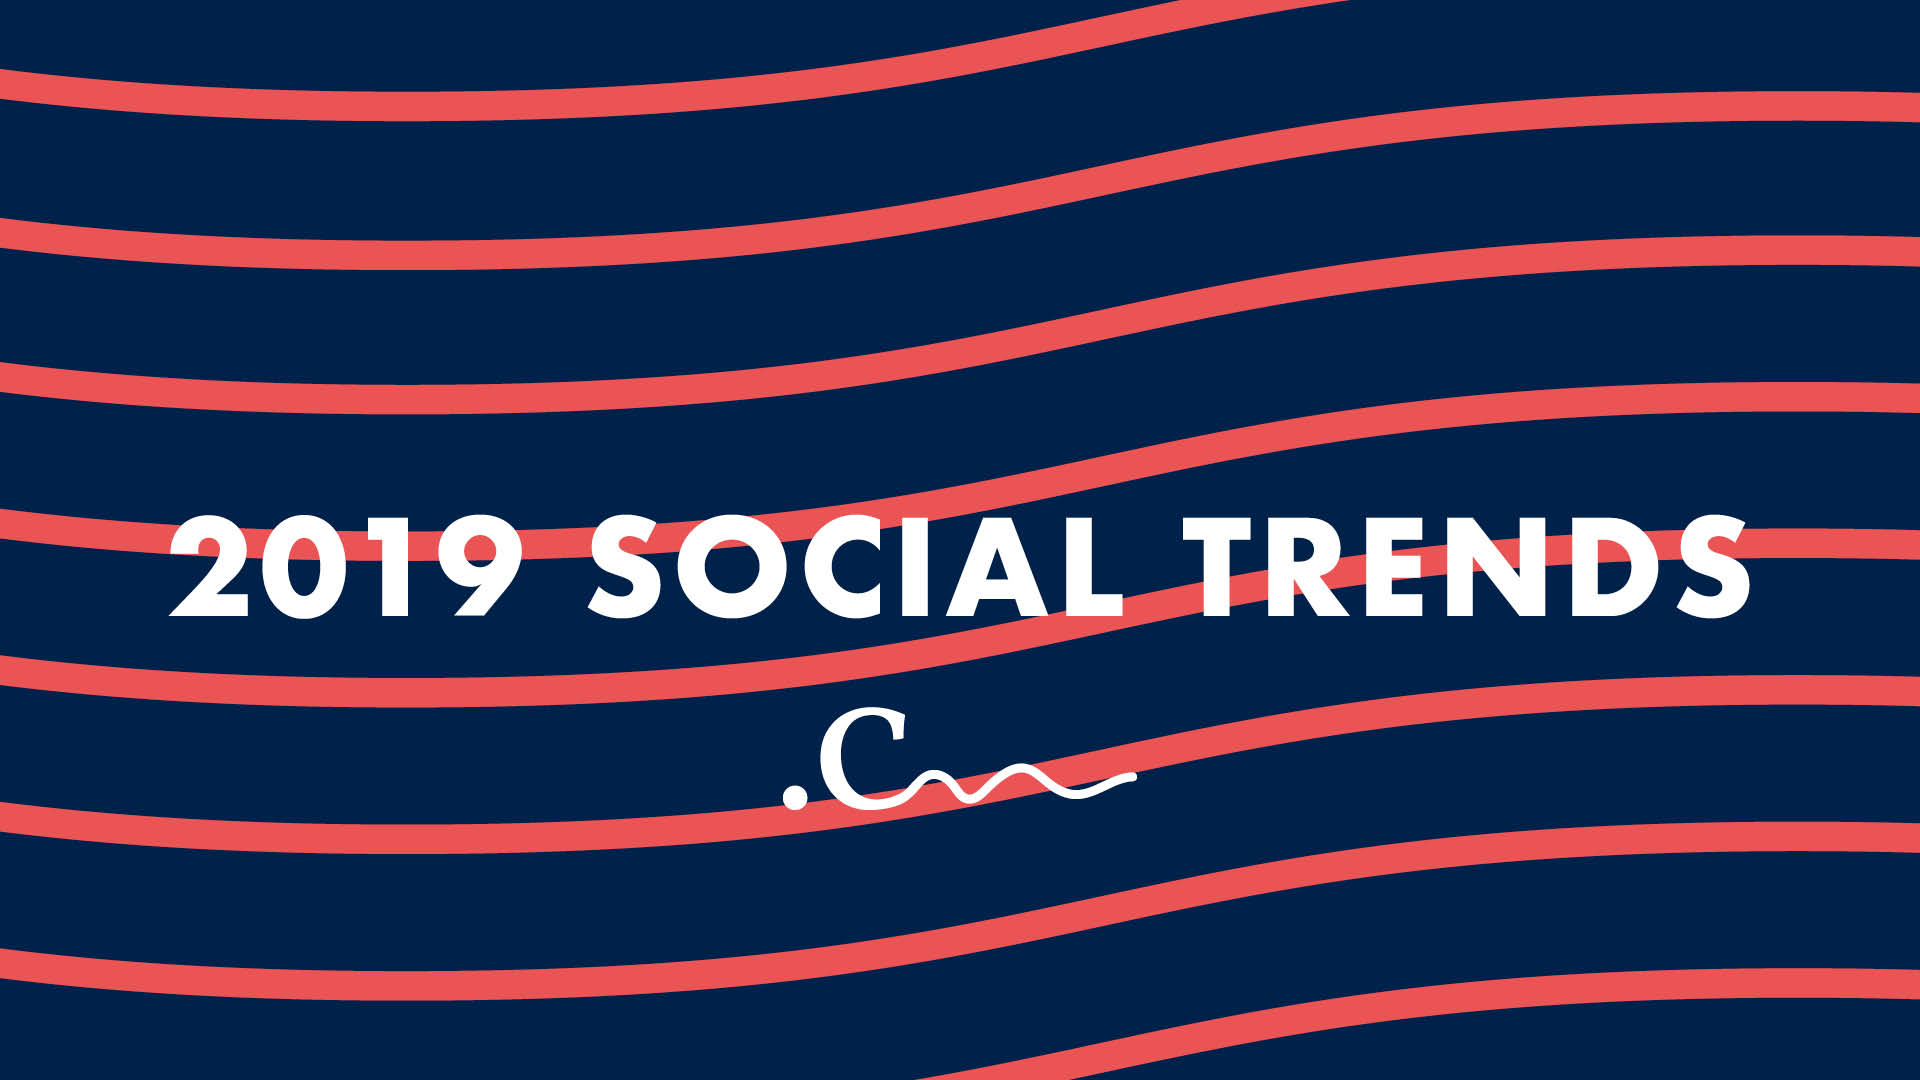 COMMS_SOCIALTRENDS_2019.jpg